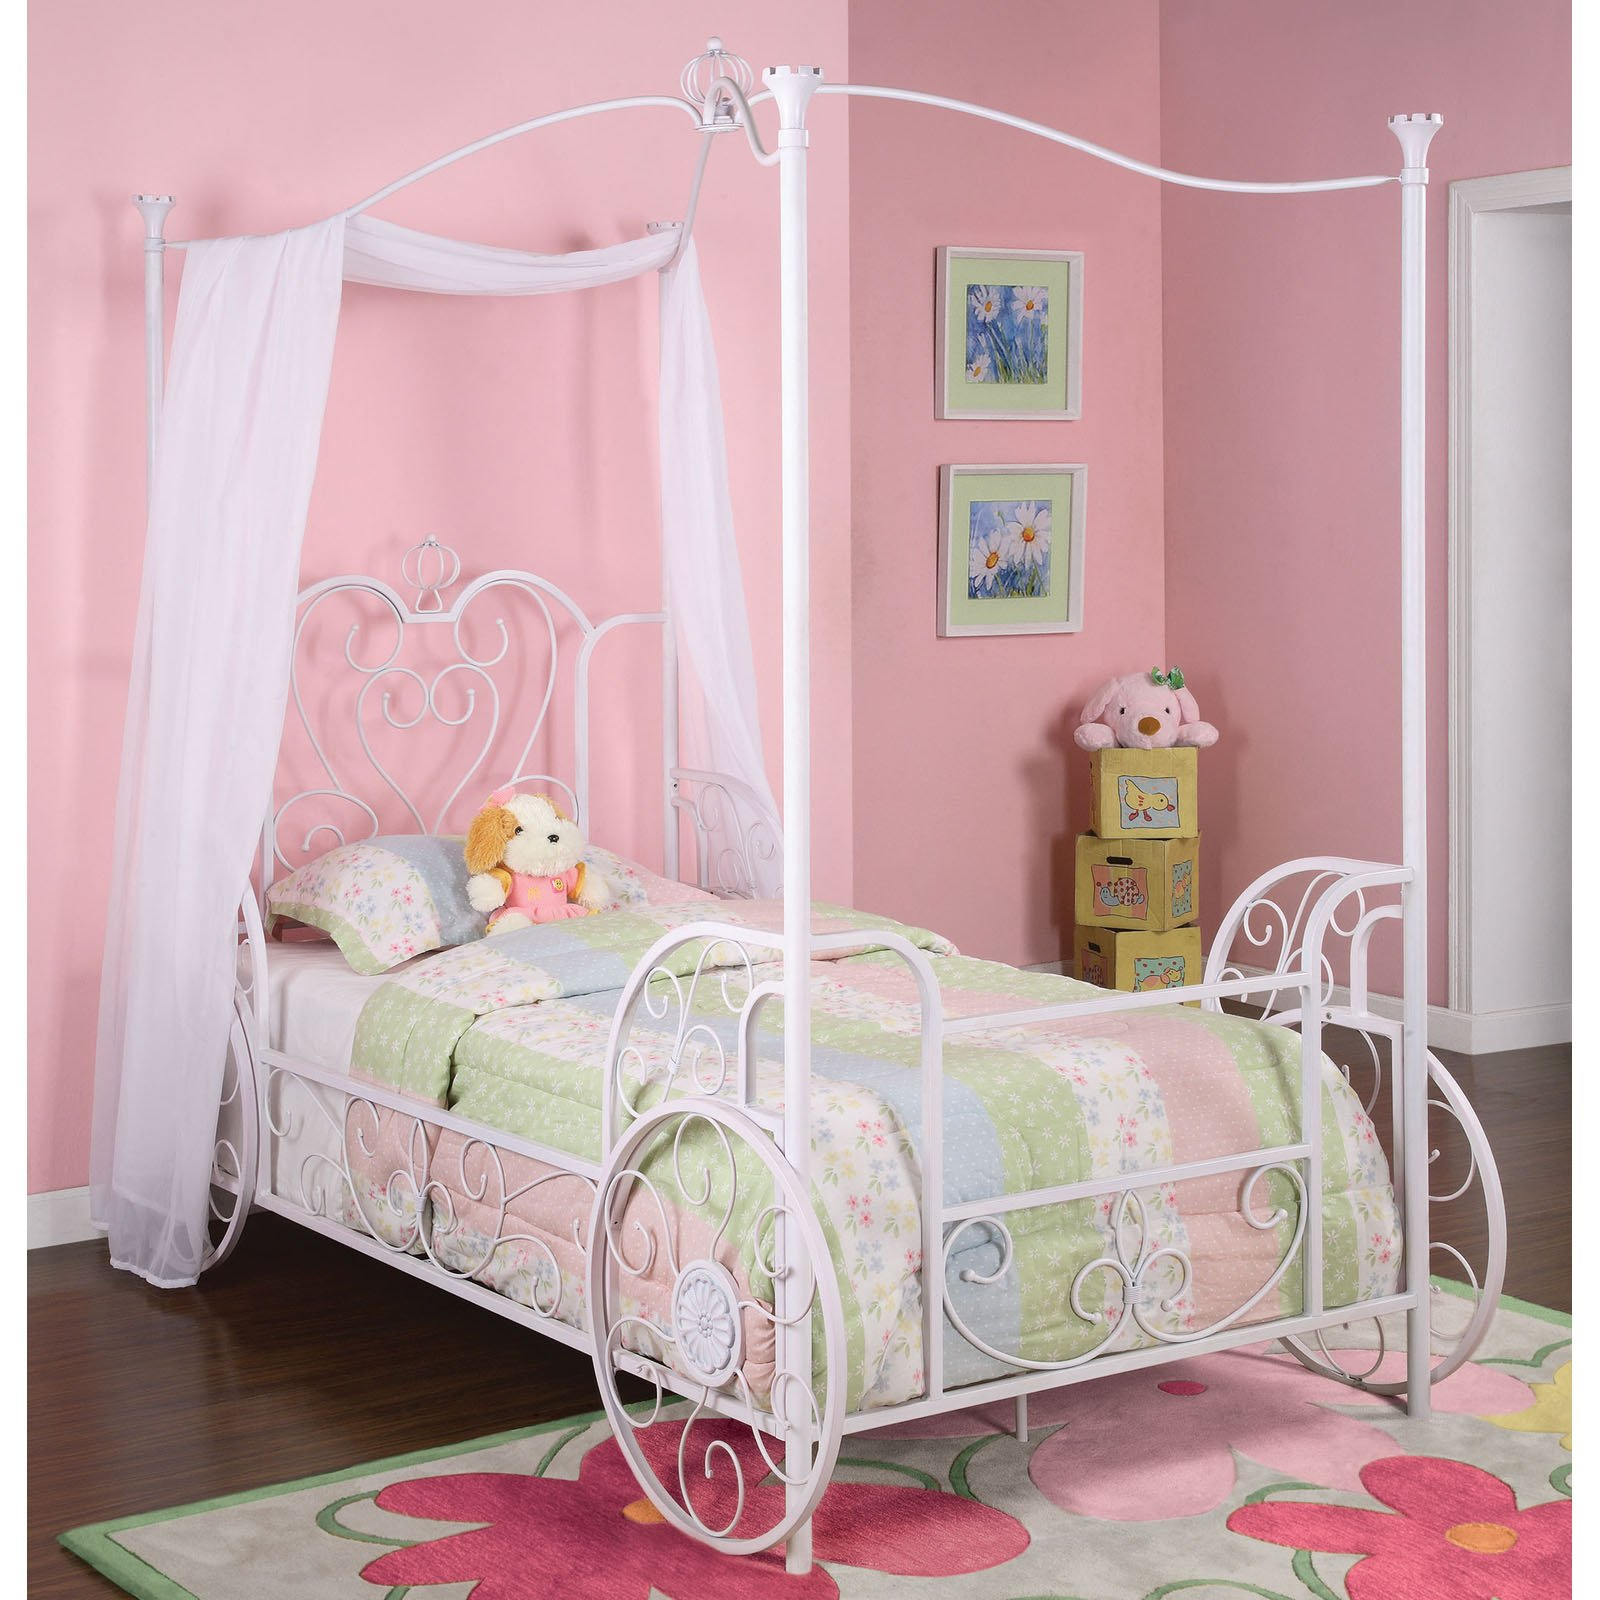 Little Girl Canopy Bed Ideas Interior Design Home Decor Furniture And Furnishings